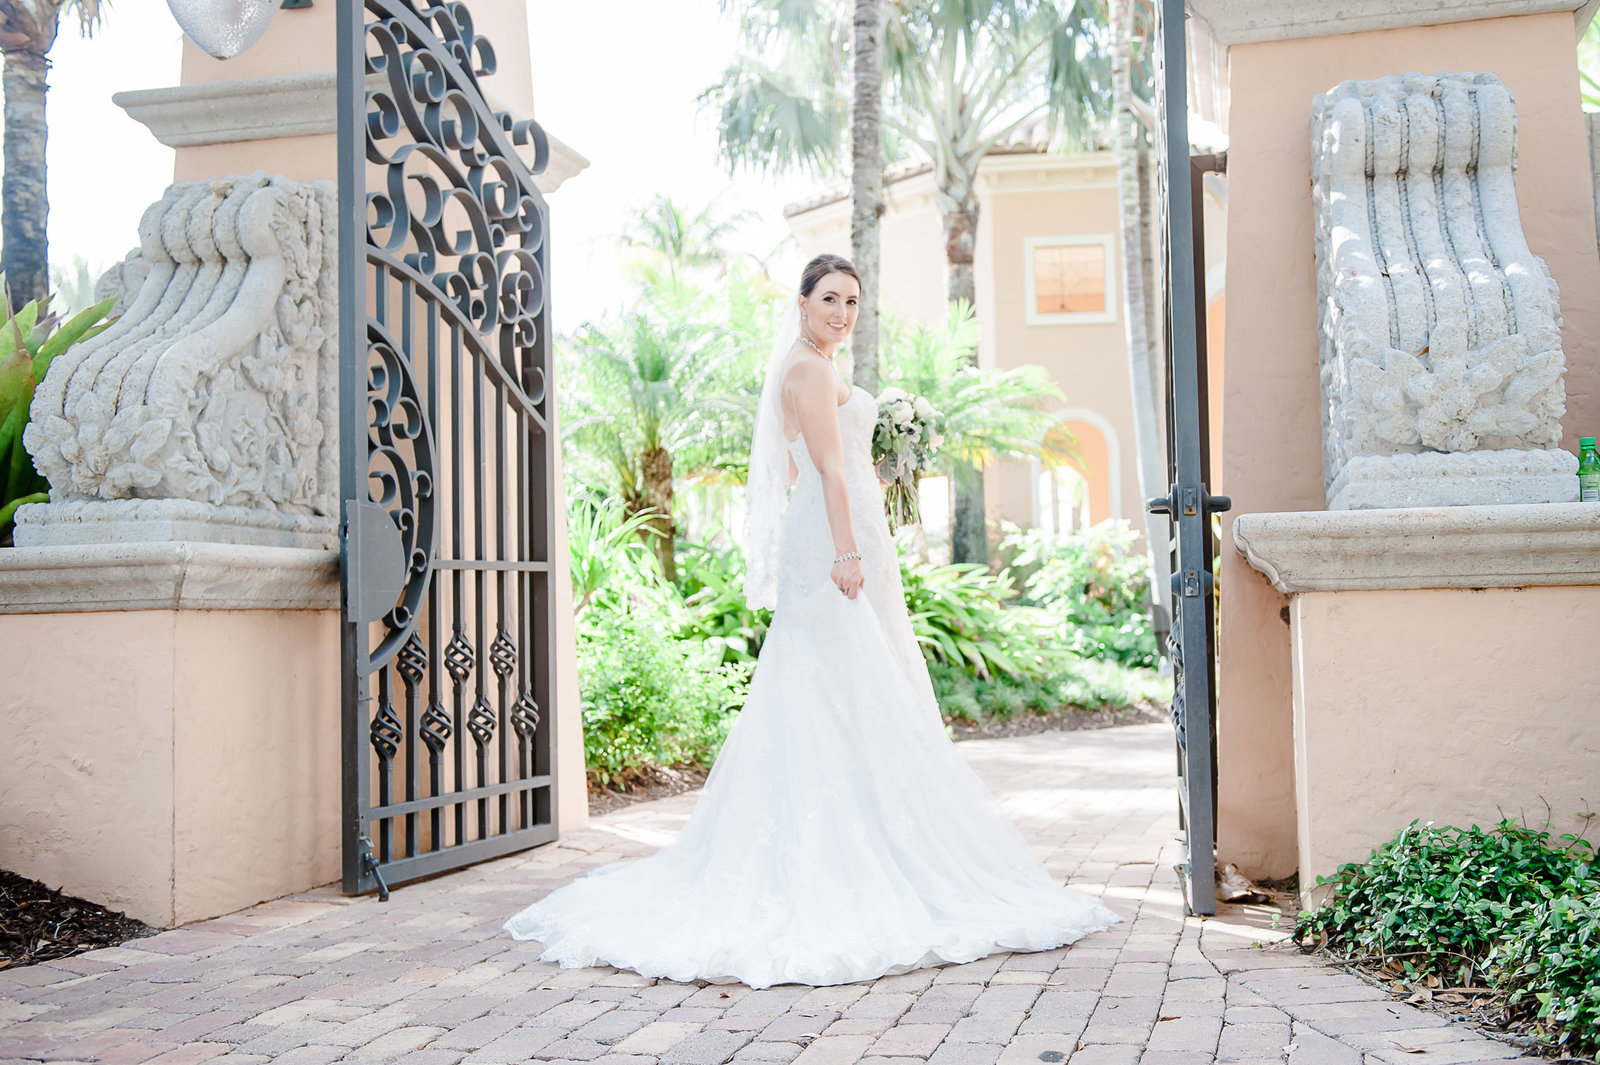 Bridal Pose - Country Club at Mirasol Wedding - Palm Beach Wedding Photography by Palm Beach Photography, Inc.